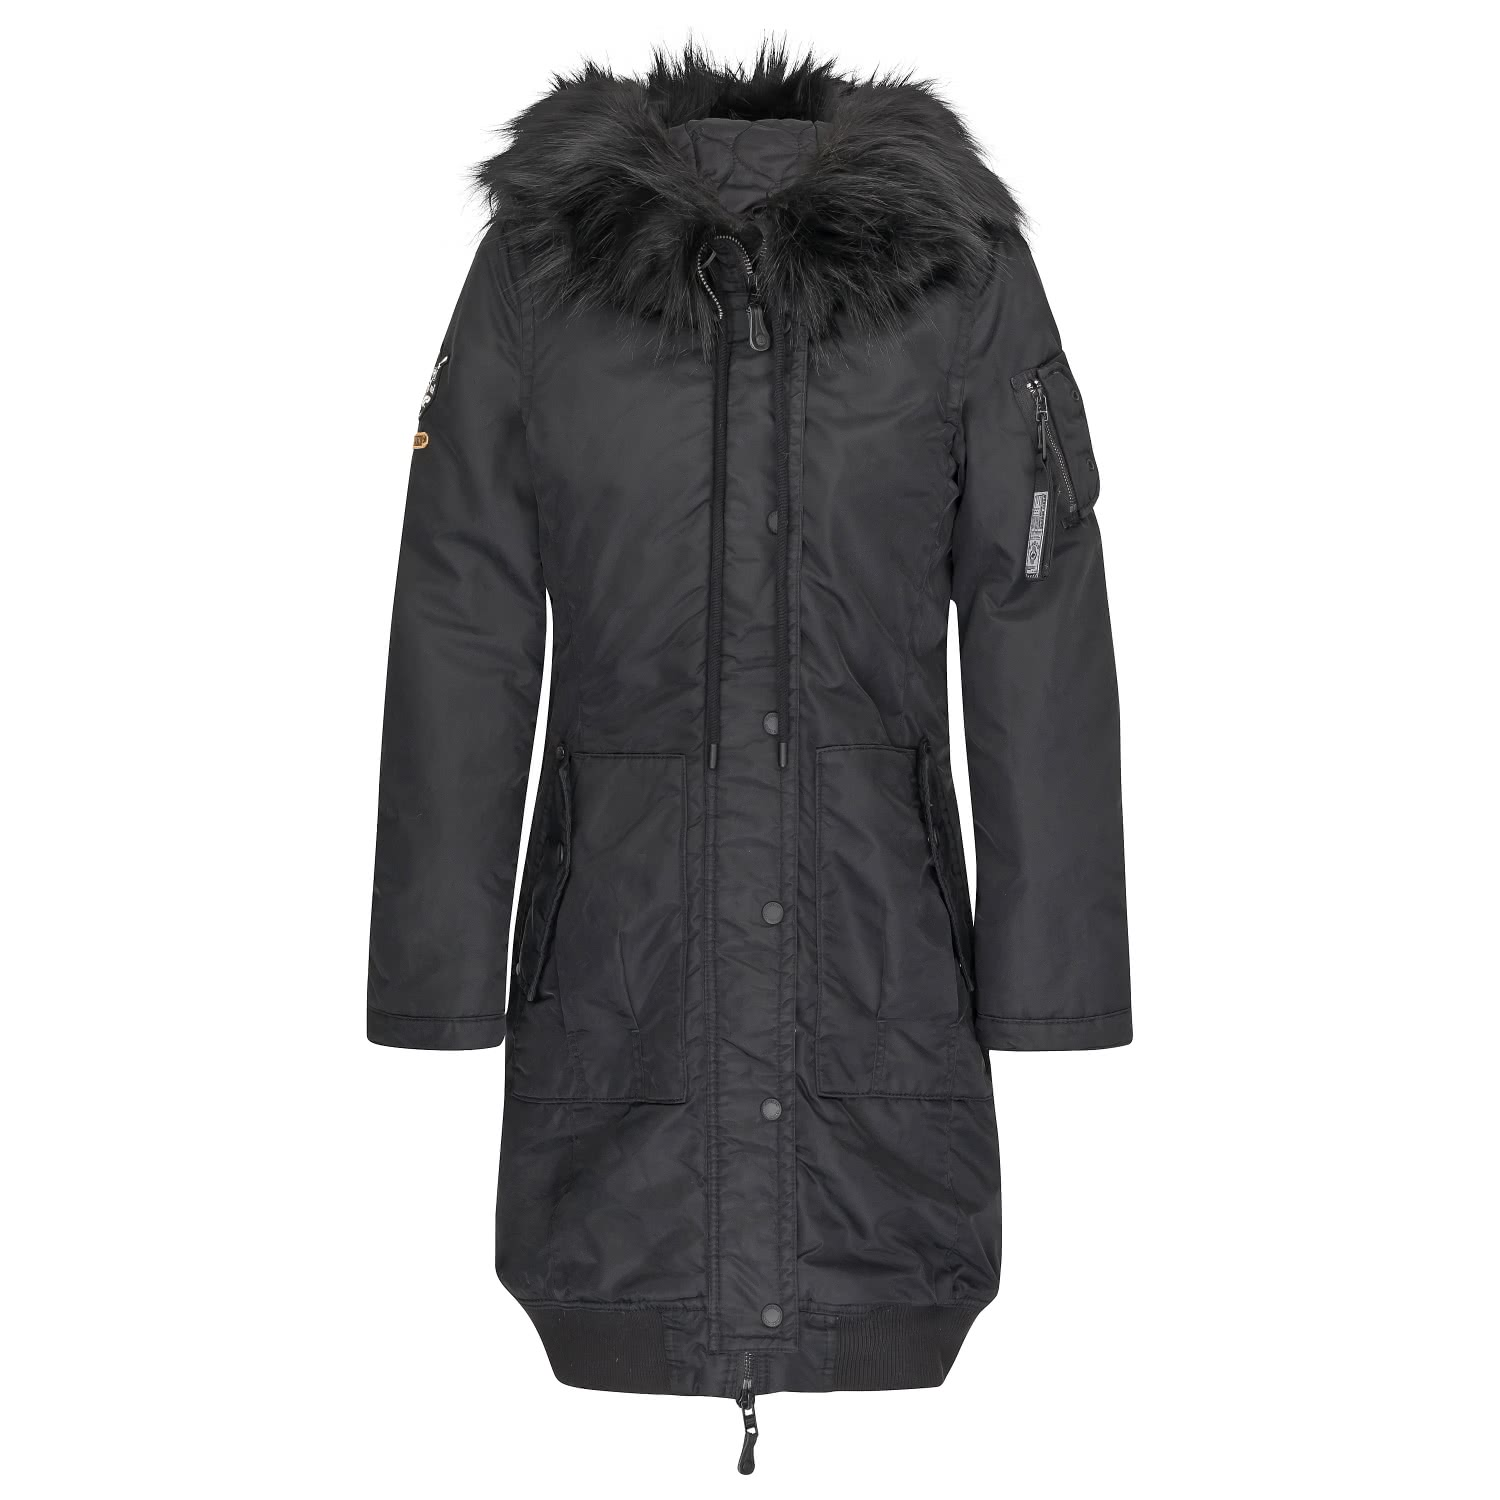 Www Zalando De Sale Wintermantel Damen Zalando Zalando Kengstar Wintermantel